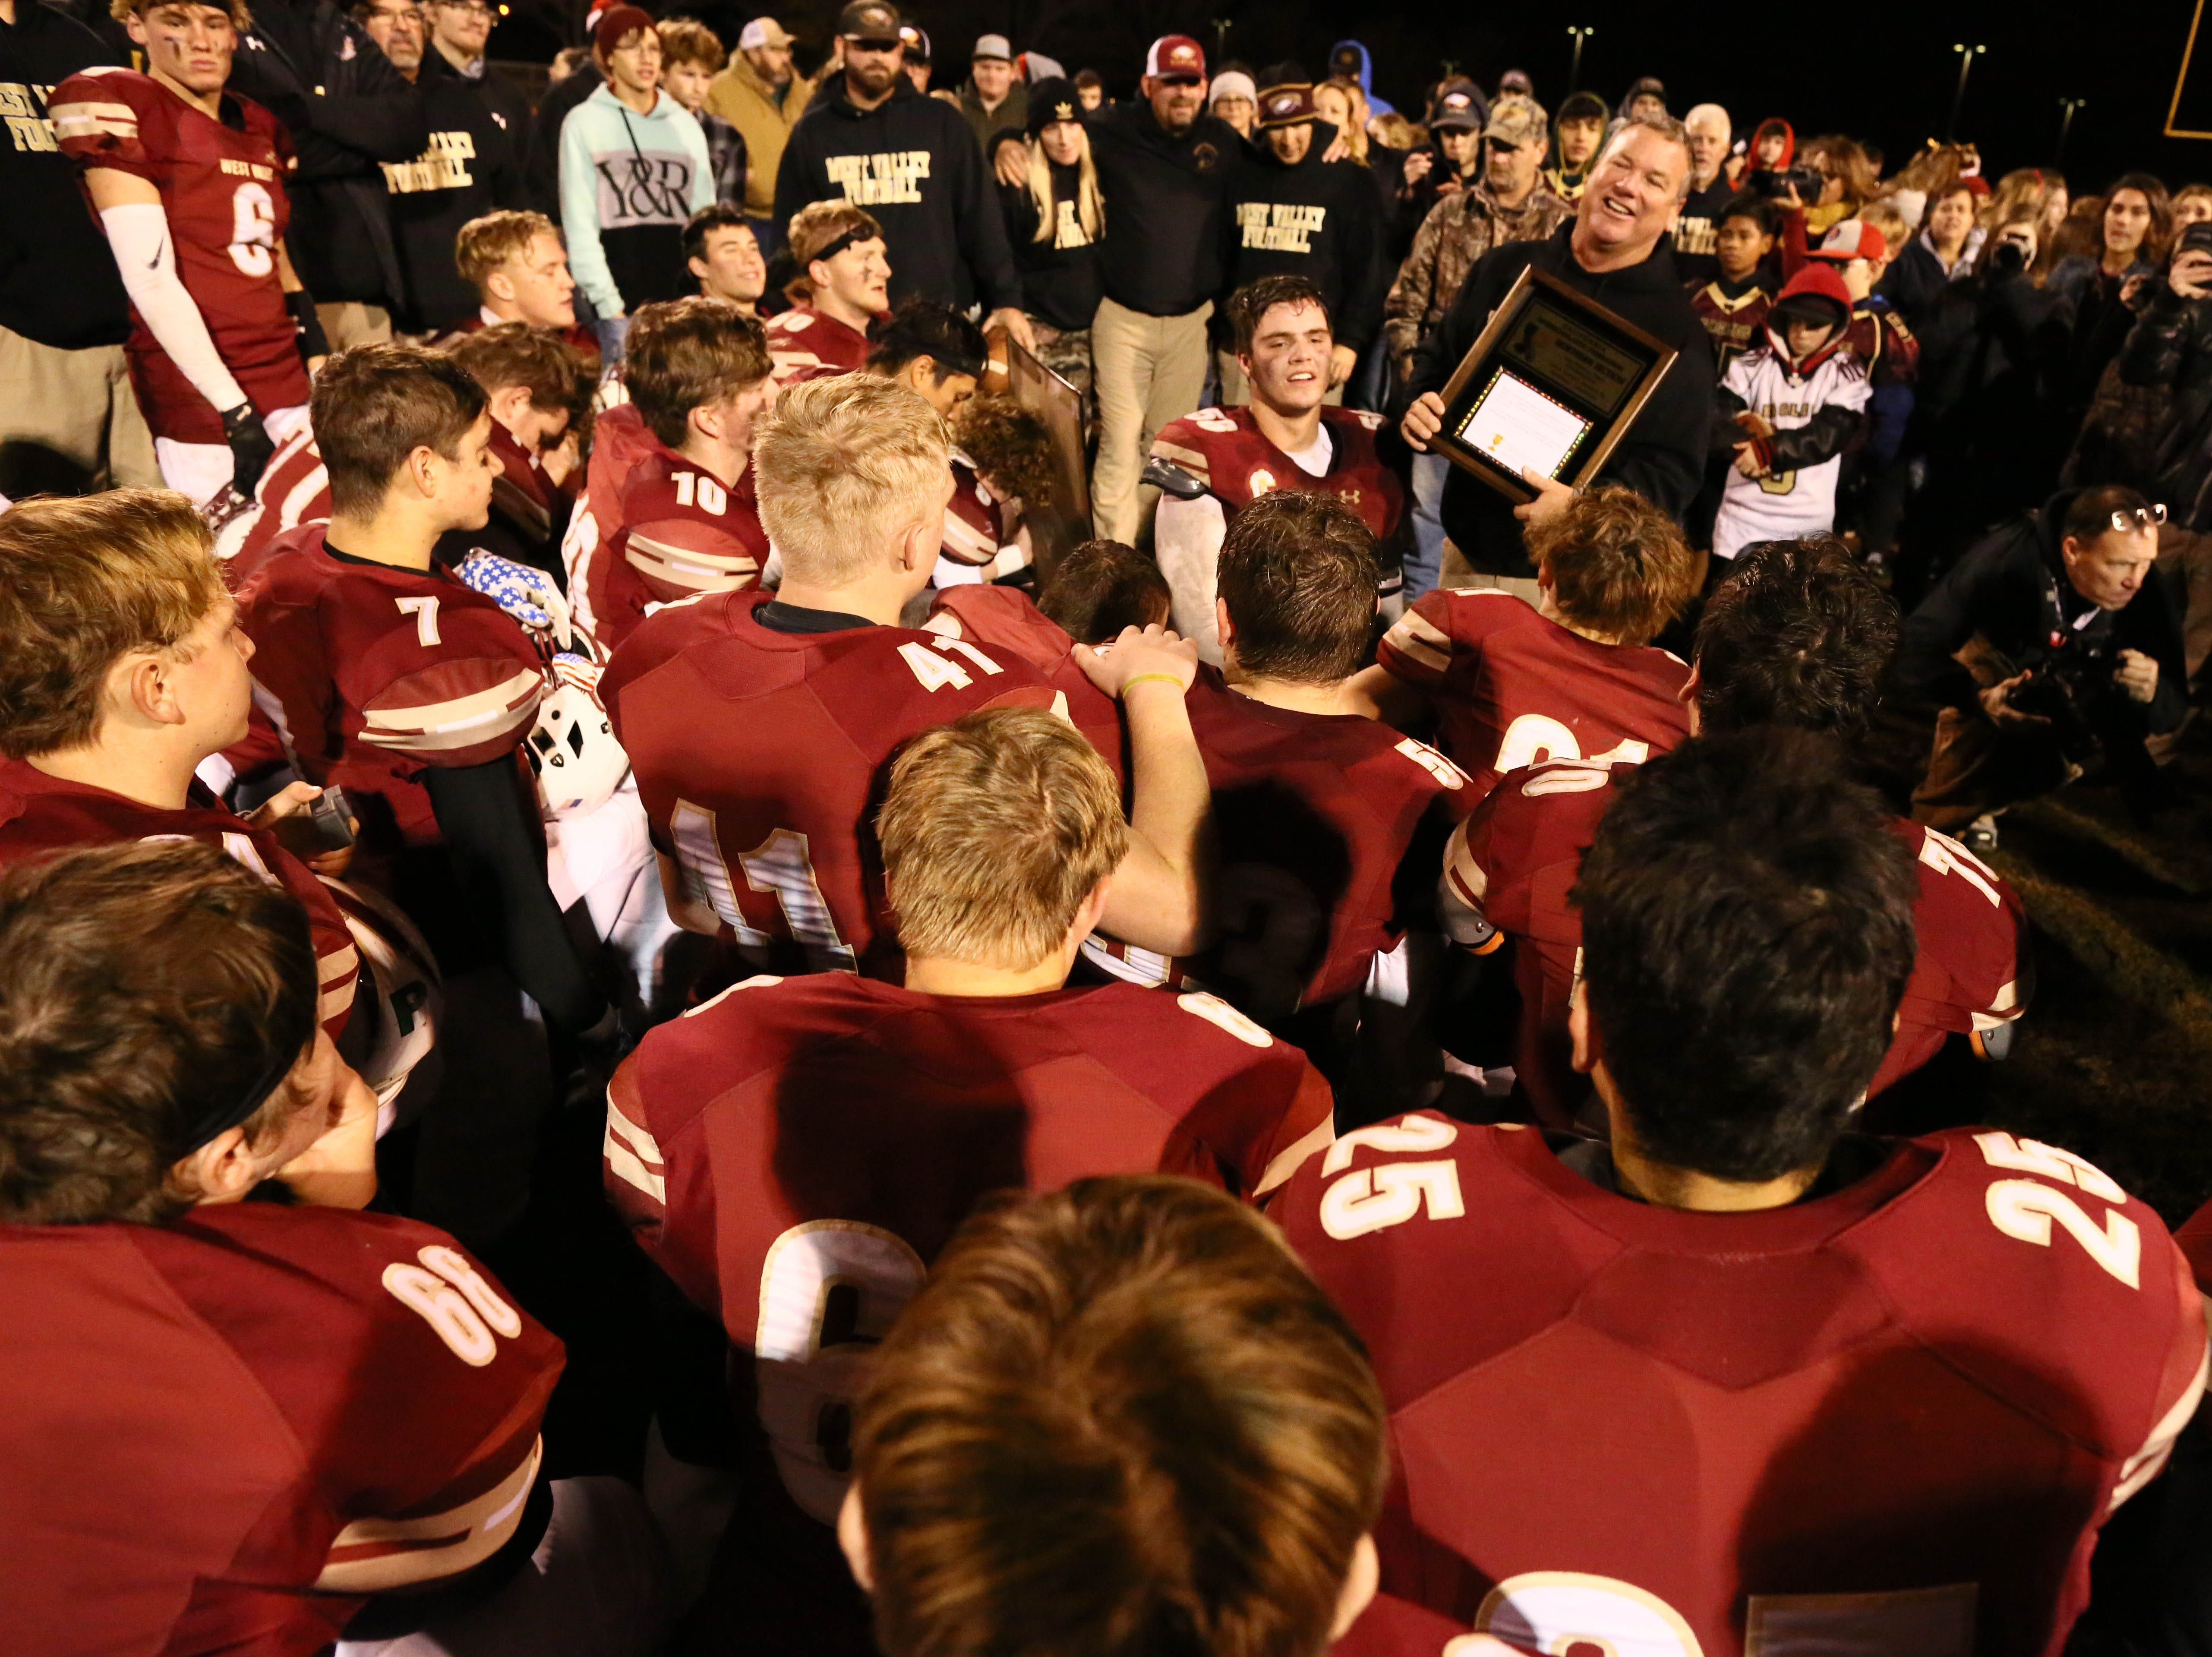 West Valley head coach Greg Grandell talks to his players after they won the Division III Northern Section championship against the Sutter Huskies, 7-0, on Saturday, Dec. 1